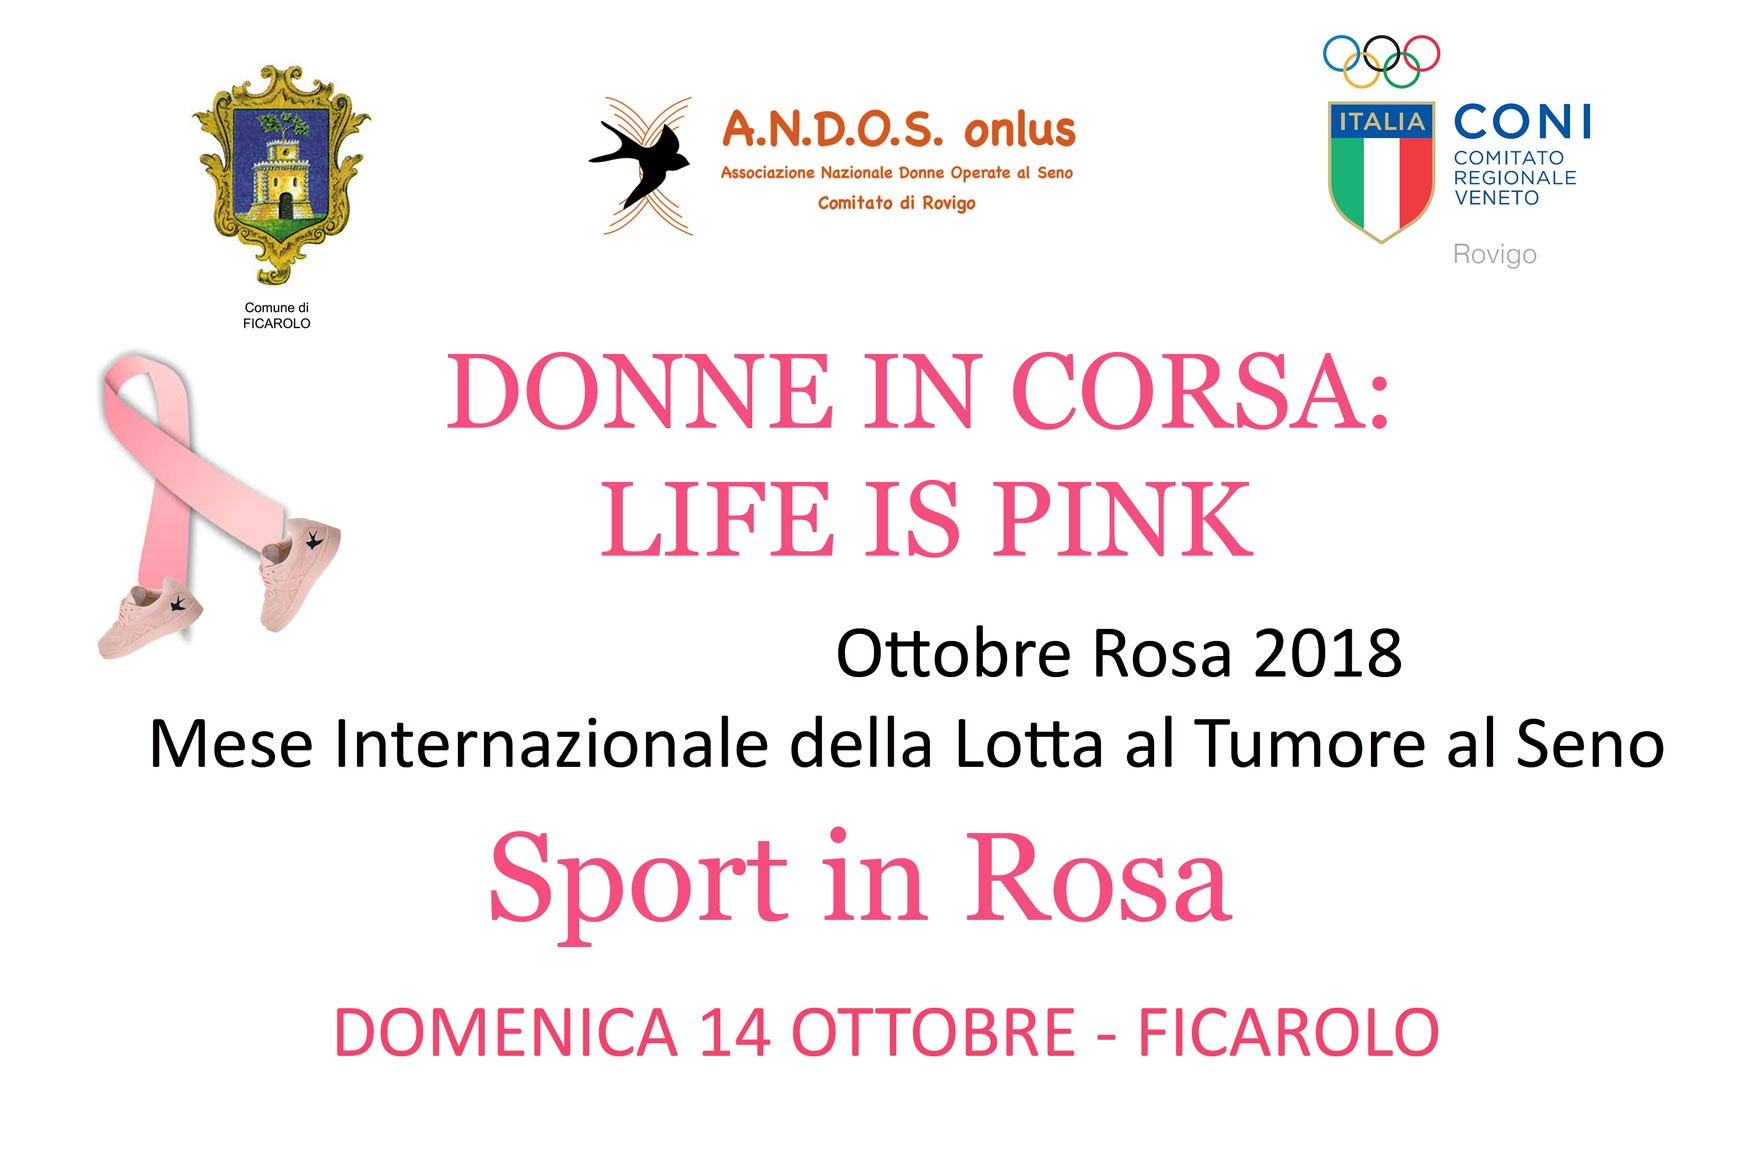 Ottobre Rosa 2018, Donne in Corsa: Life is Pink